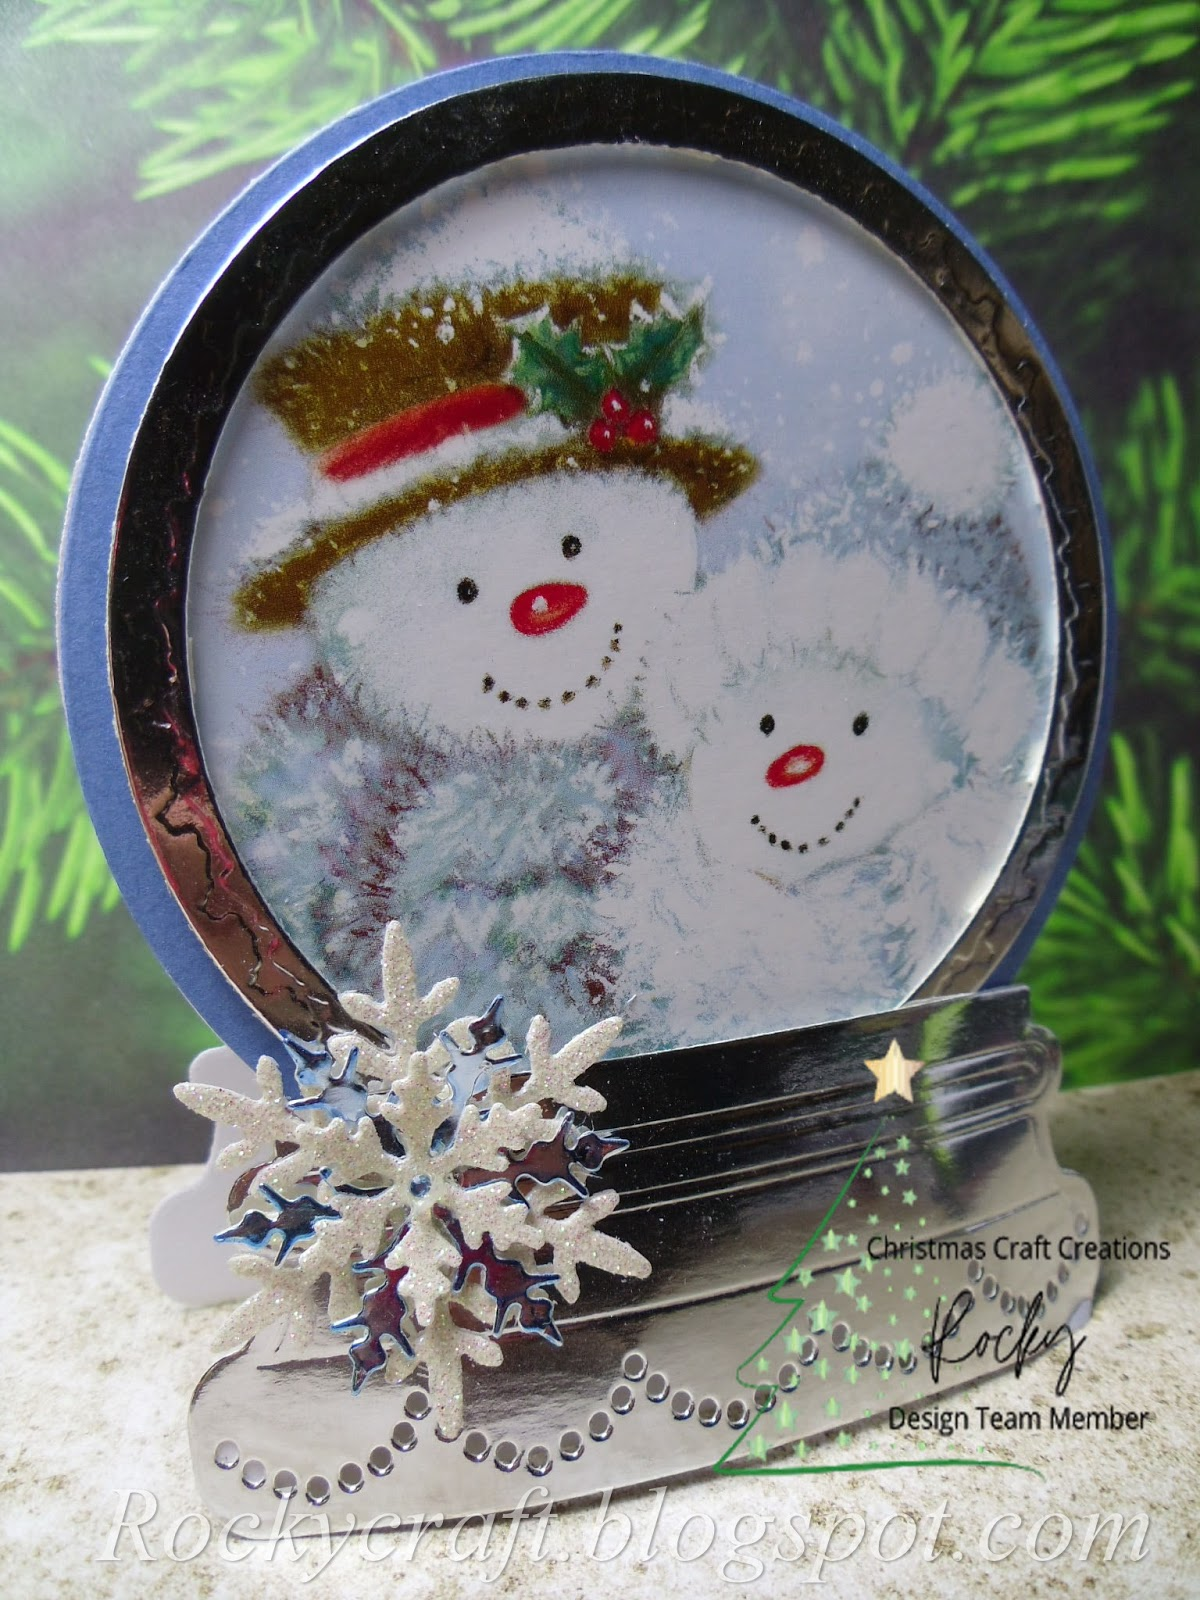 When Christmas Goes Horribly Wrong 2020 Rocky's Crafting Blog: Snow Happy